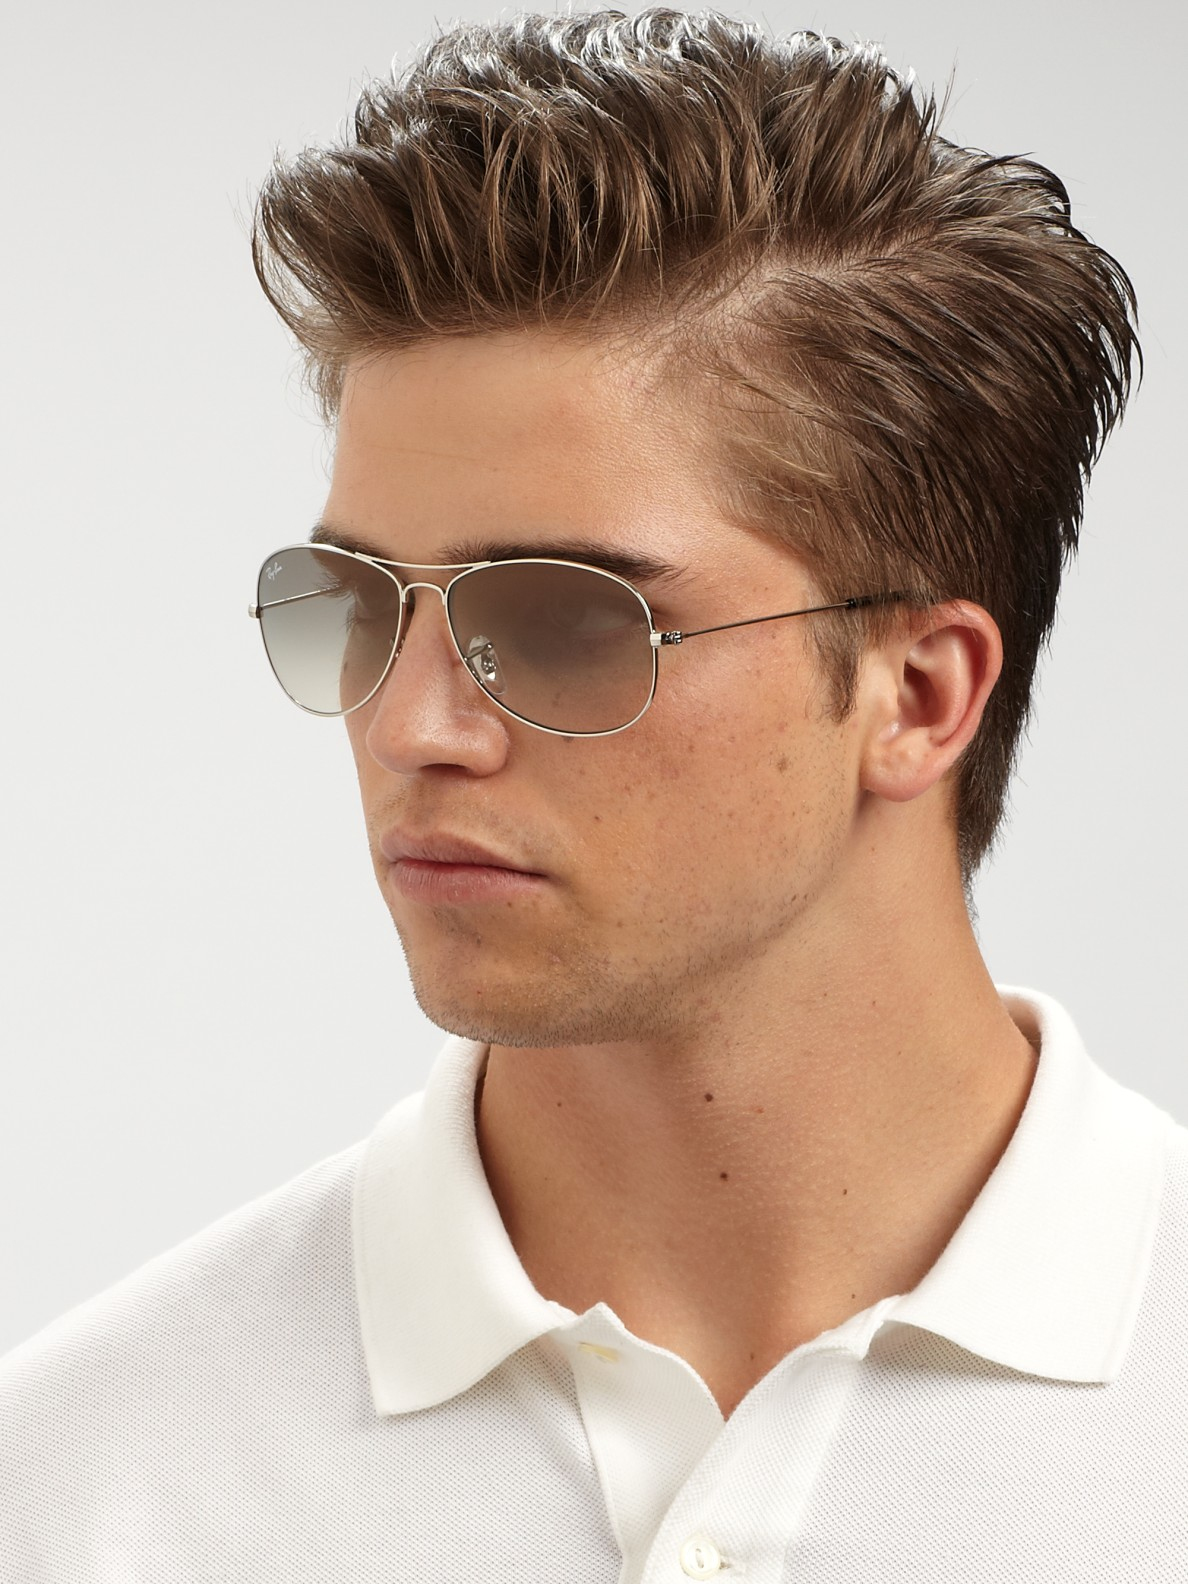 Men's Aviator Sunglasses. From the traditional teardrop to the more modern square shape, aviators are one of the most versatile sunglass styles. The choice of lens types and colors, along with options in frame material and width give you the widest selection of aviator frames to shop.